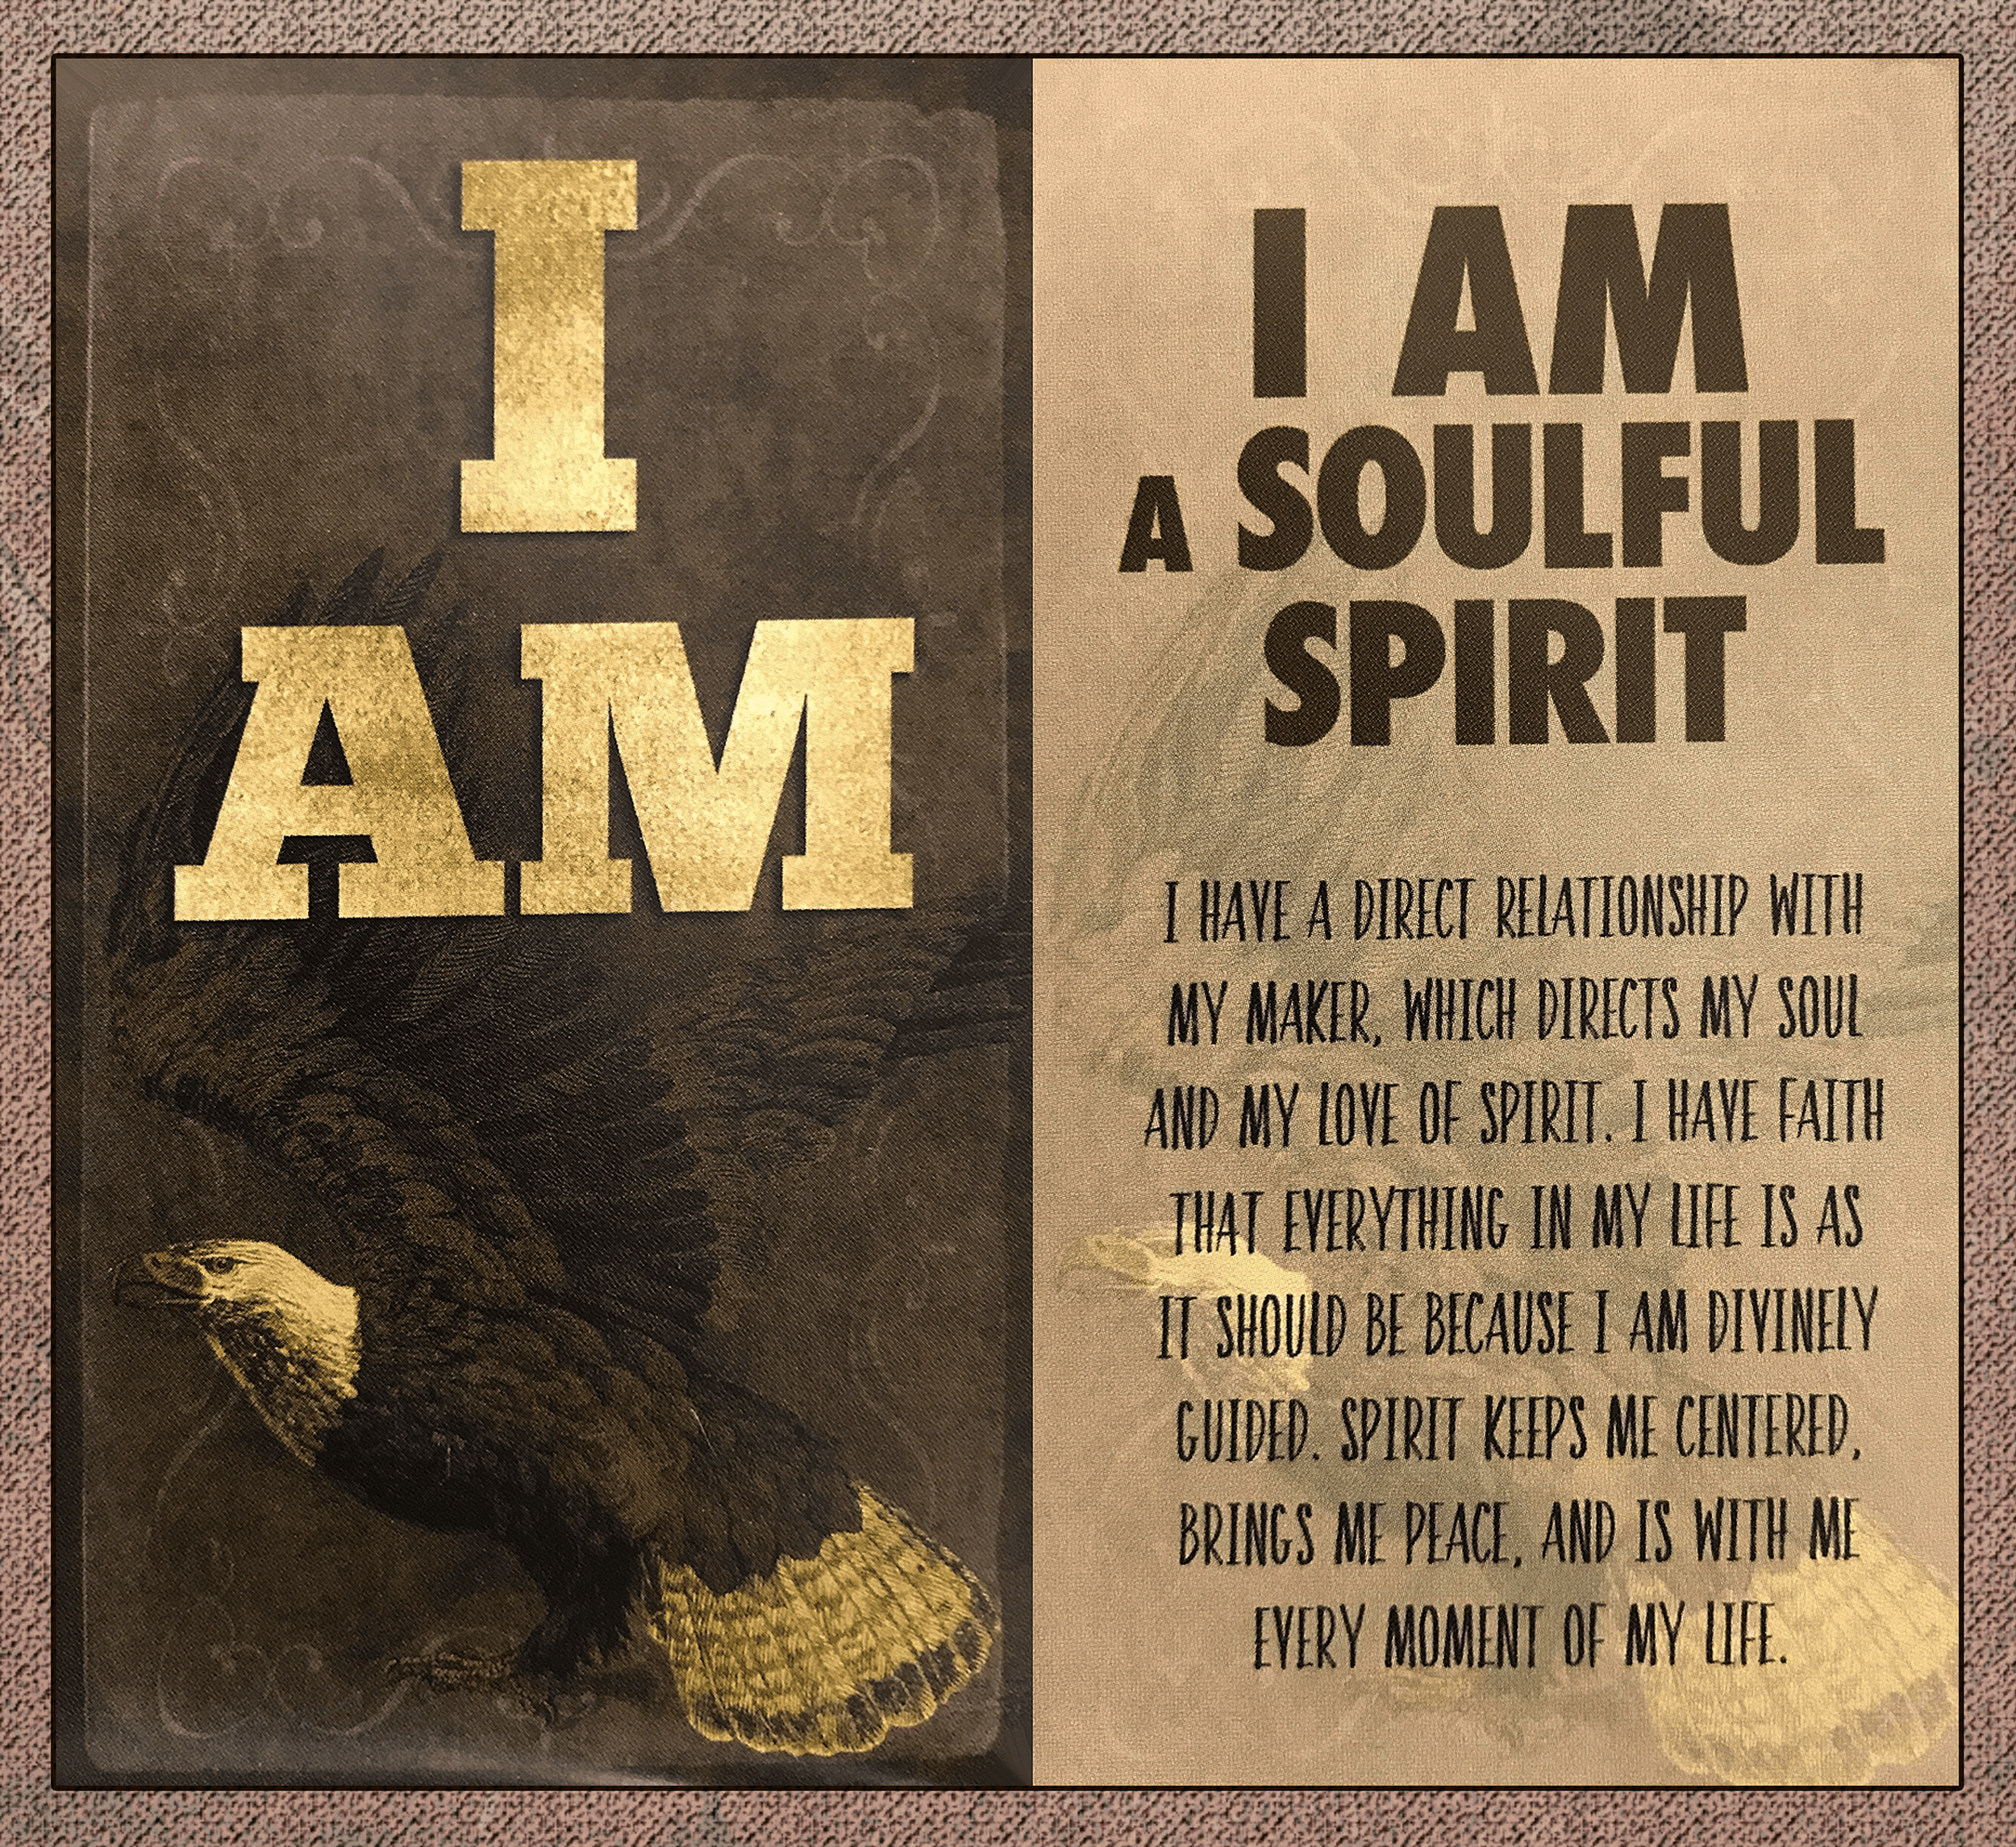 I am a soulful spirit. I have a direct relationship with my maker, which directs my soul and my love of spirit. I have faith that everything in my life is as it should be, because I am divinely guided. Spirit keeps me centered, brings me peace, and it is with me every moment of my life.